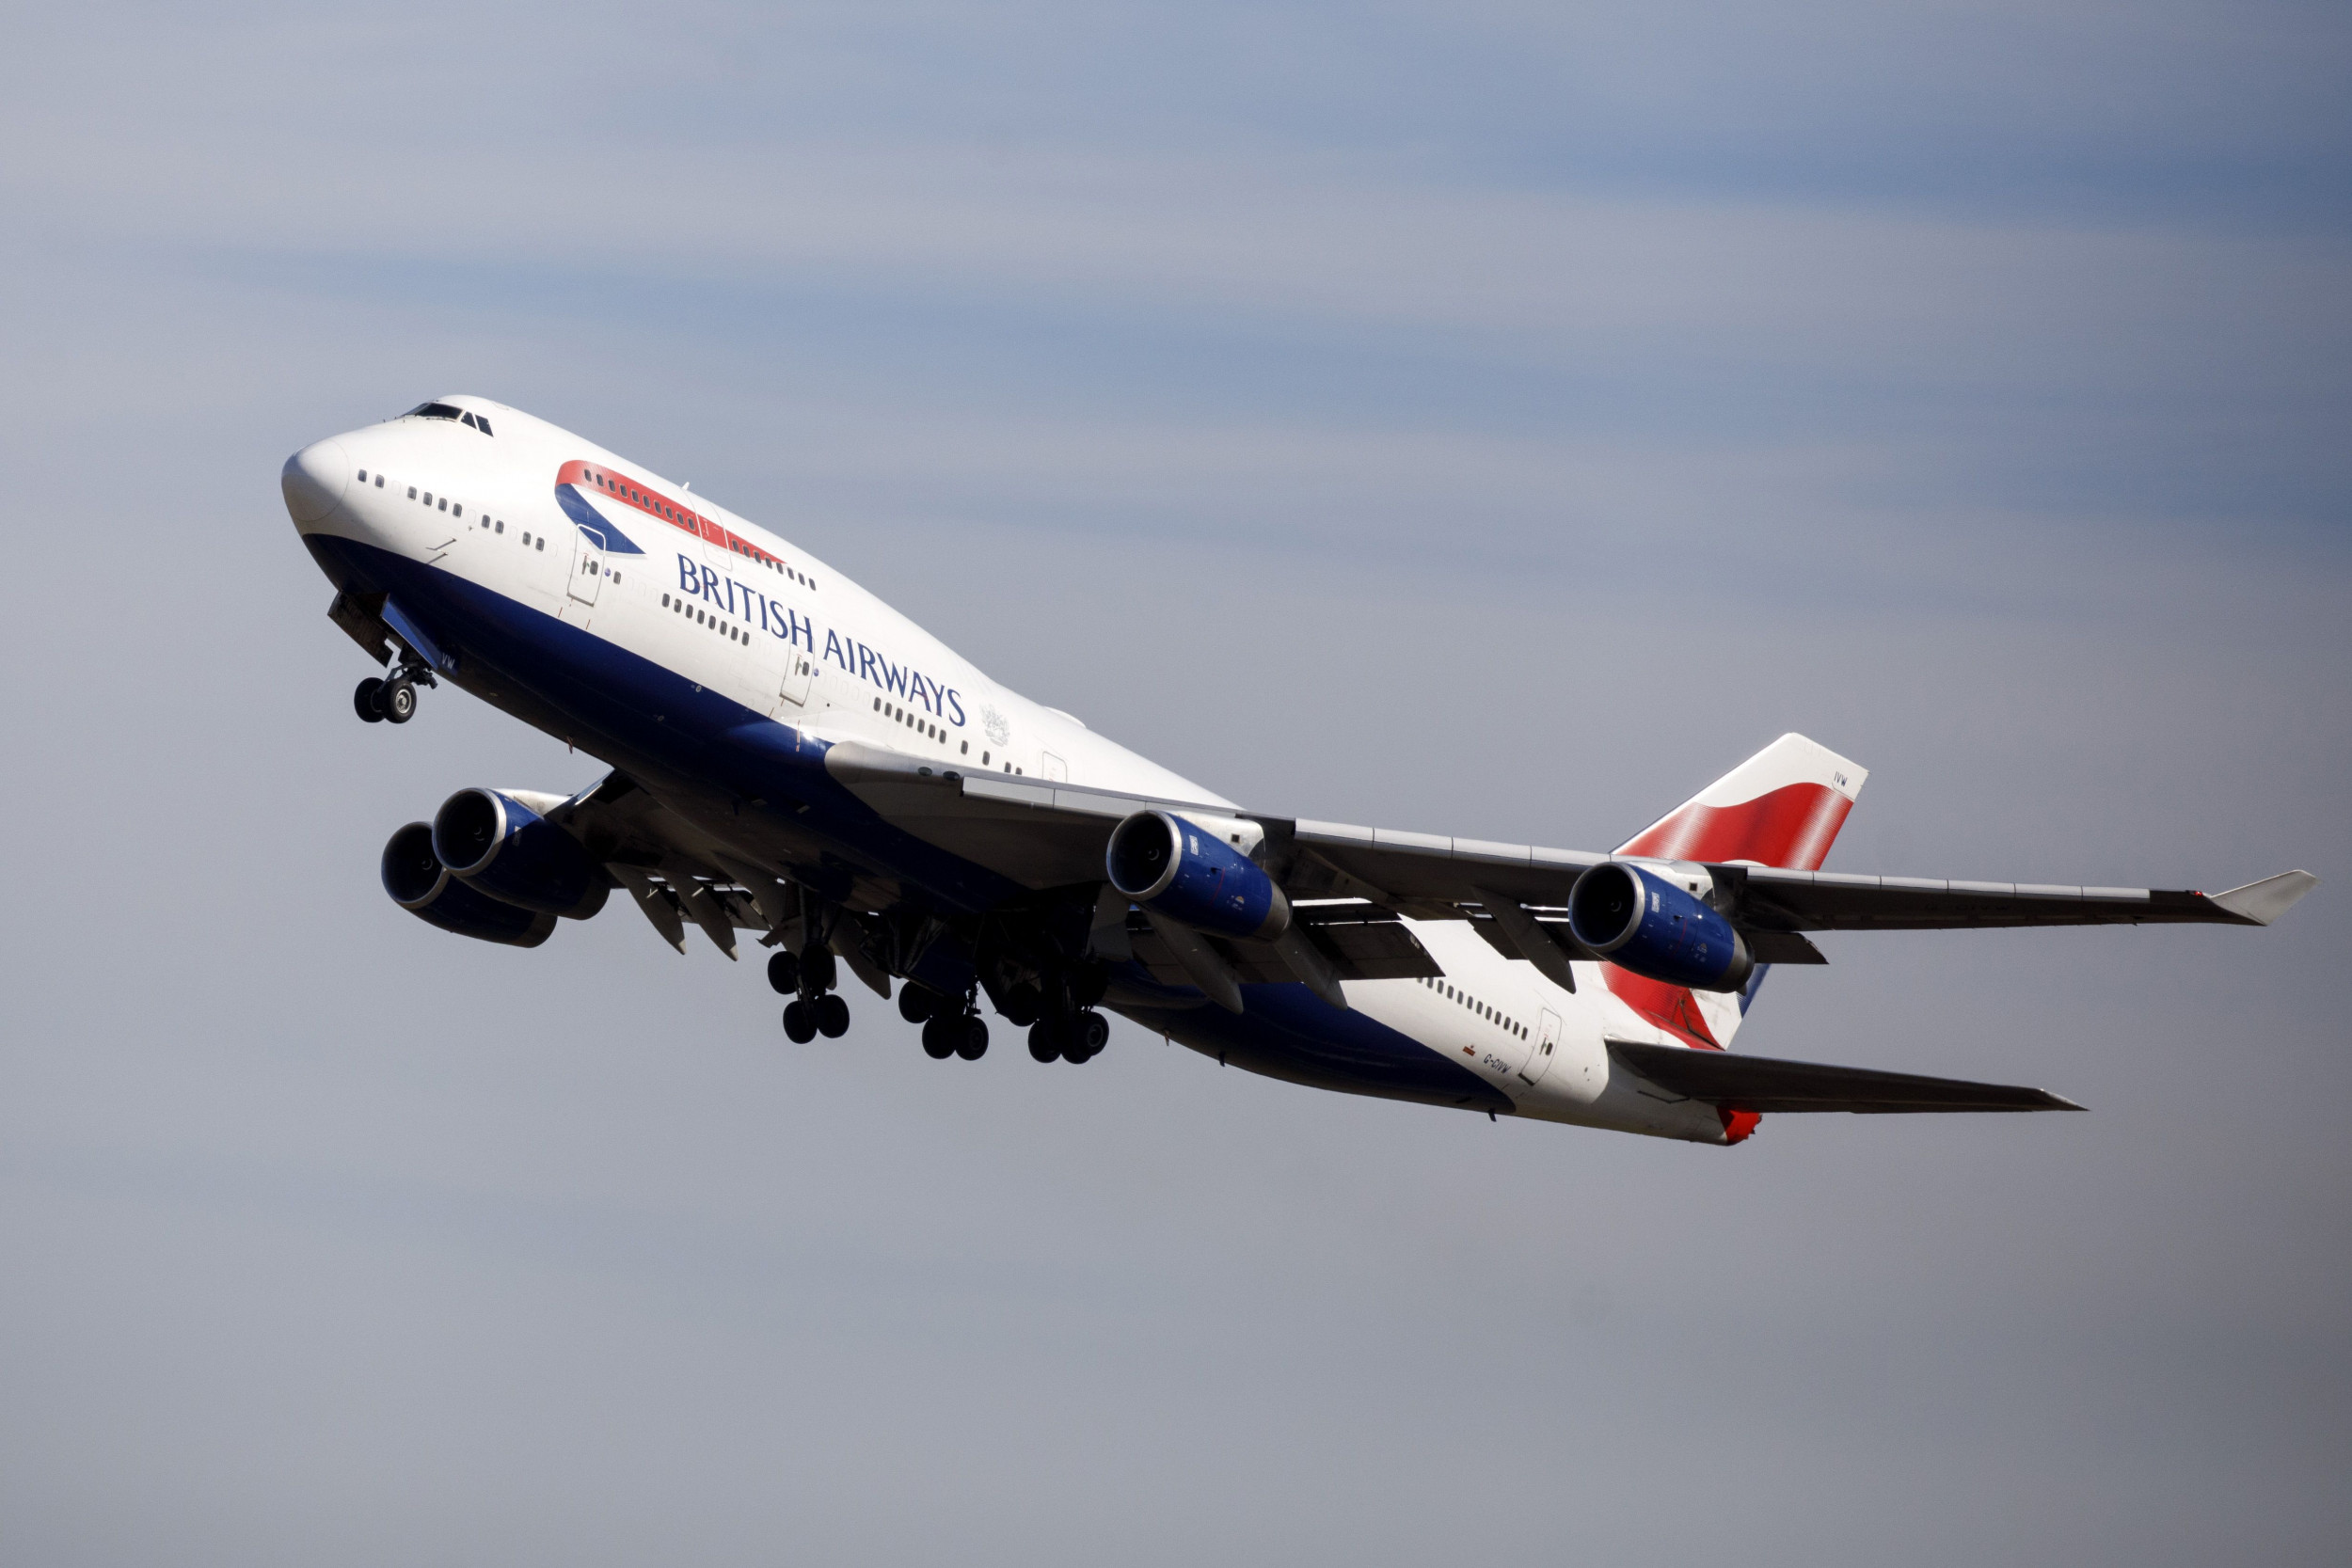 Movie Producer Blasts British Airways After Finding Seat 'Filthy' - Newsweek